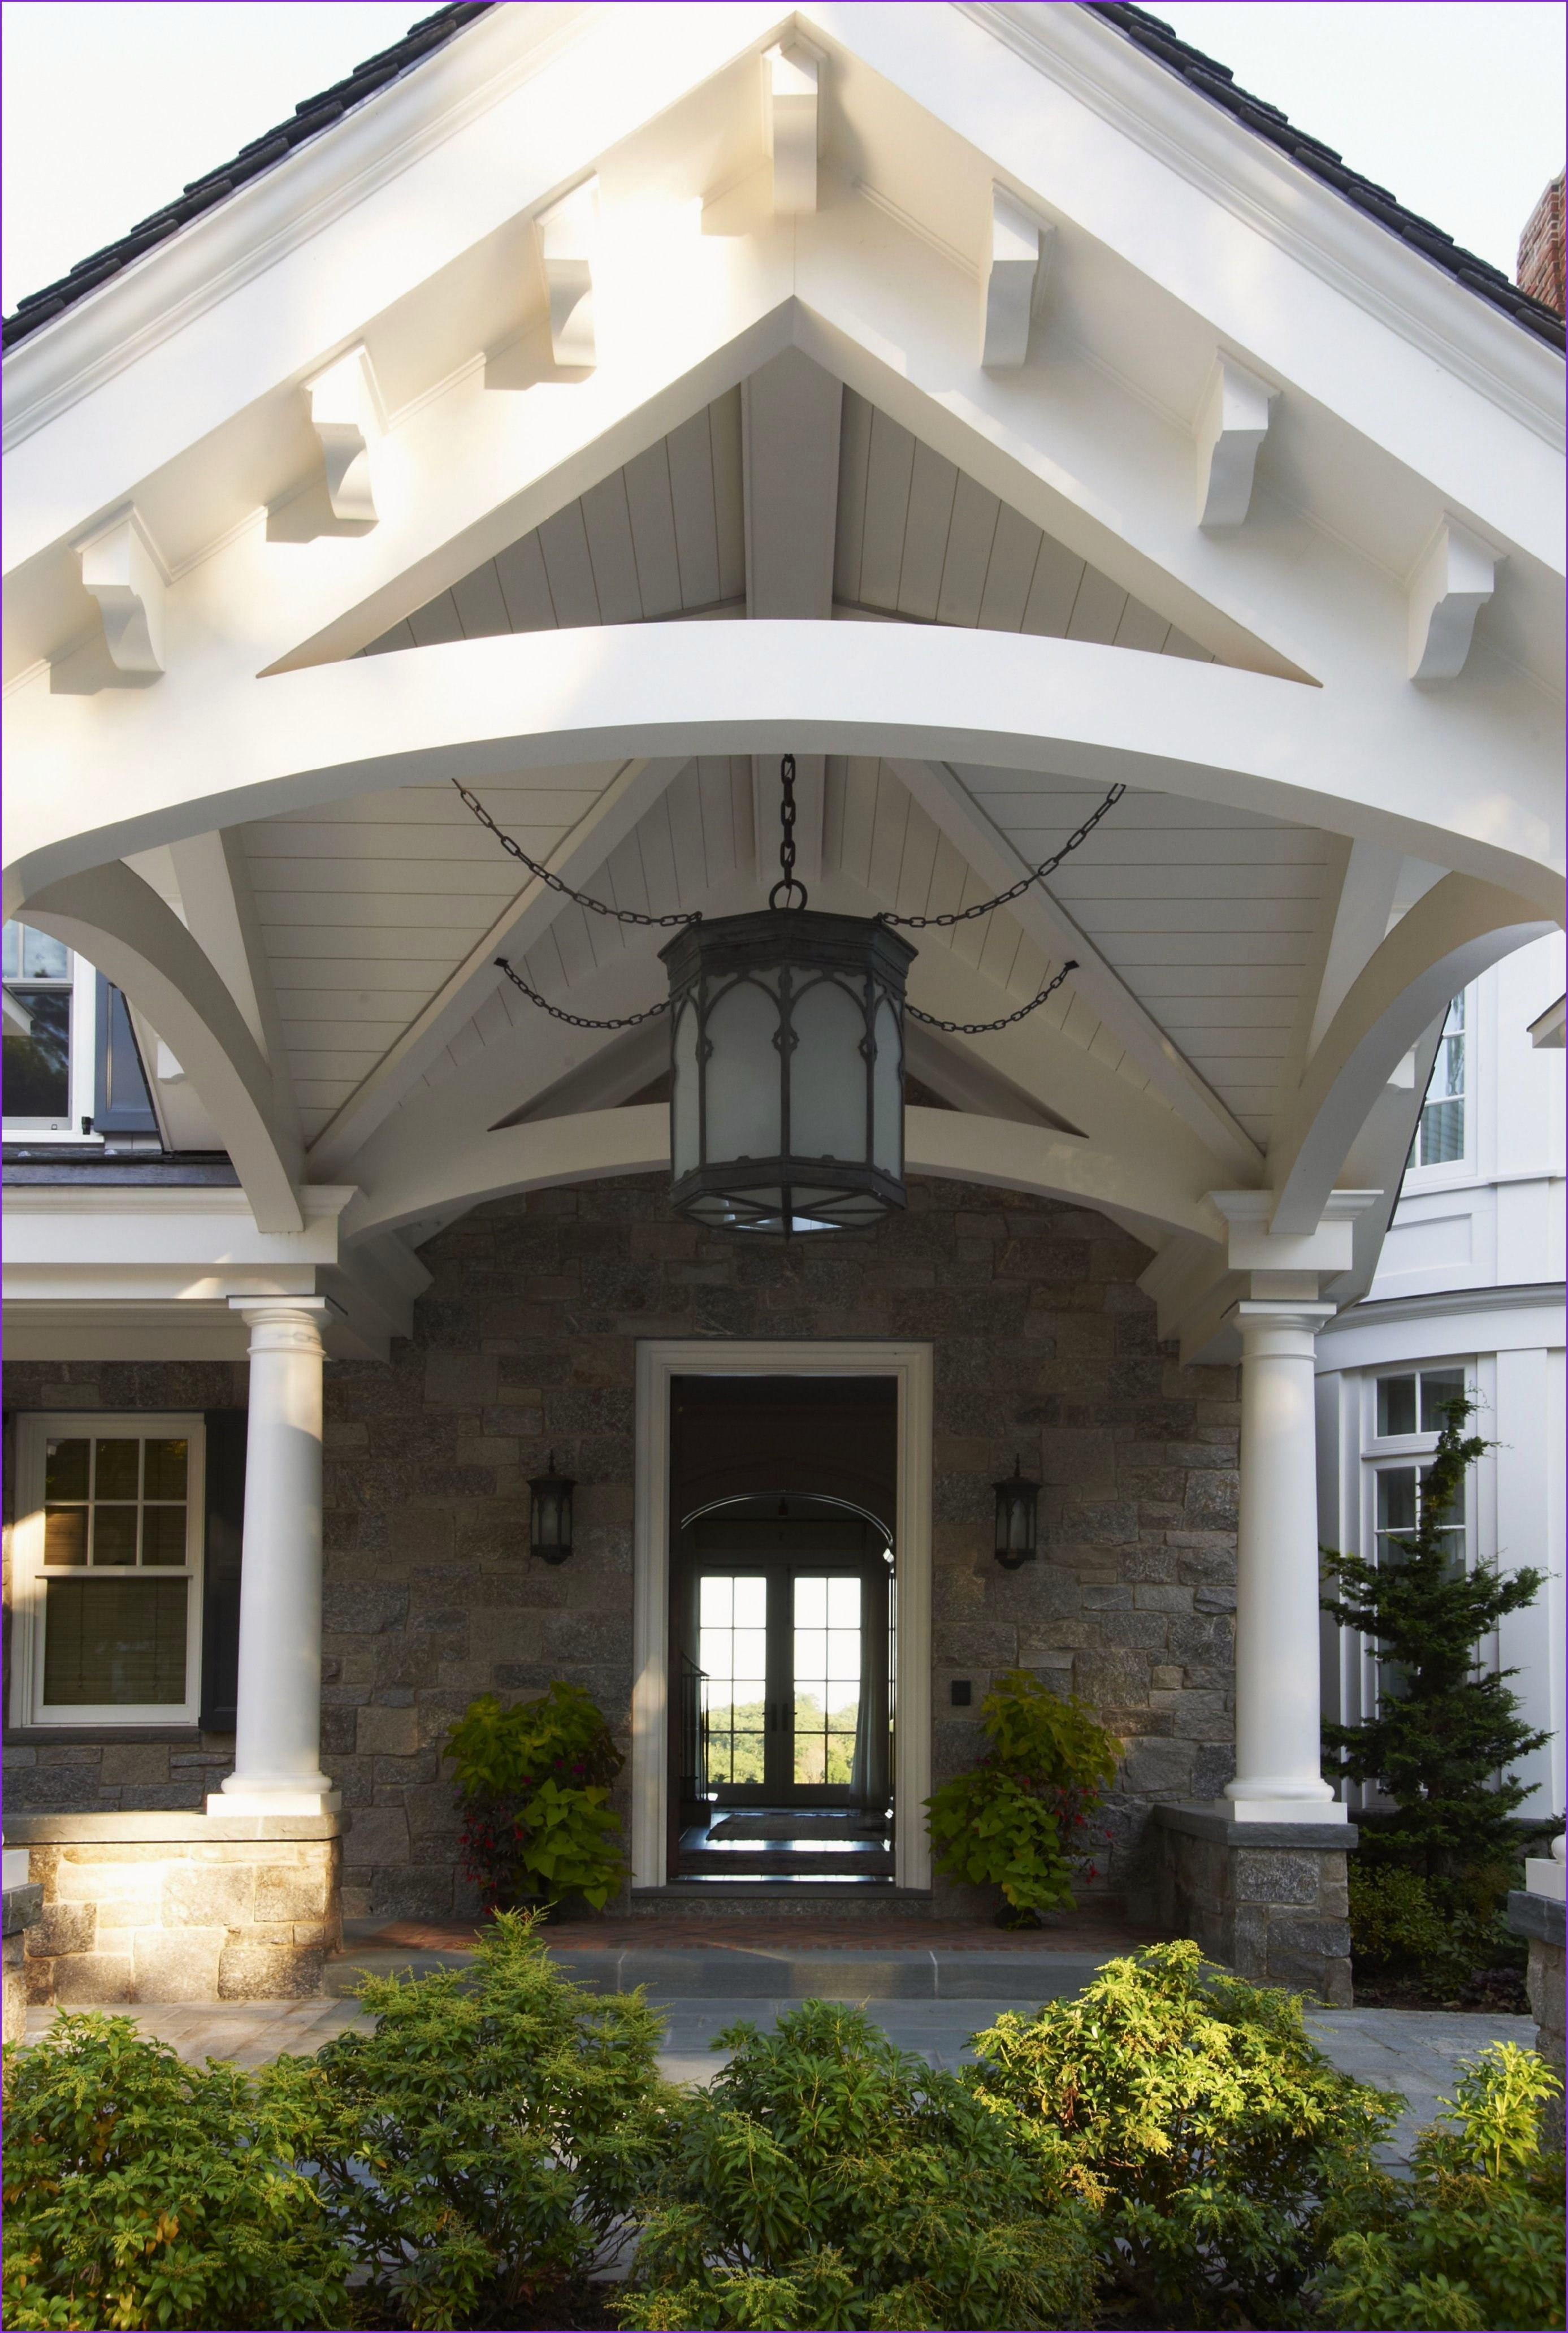 Awesome Carport In Front Of House In 2020 House Front House Exterior Portico Entry